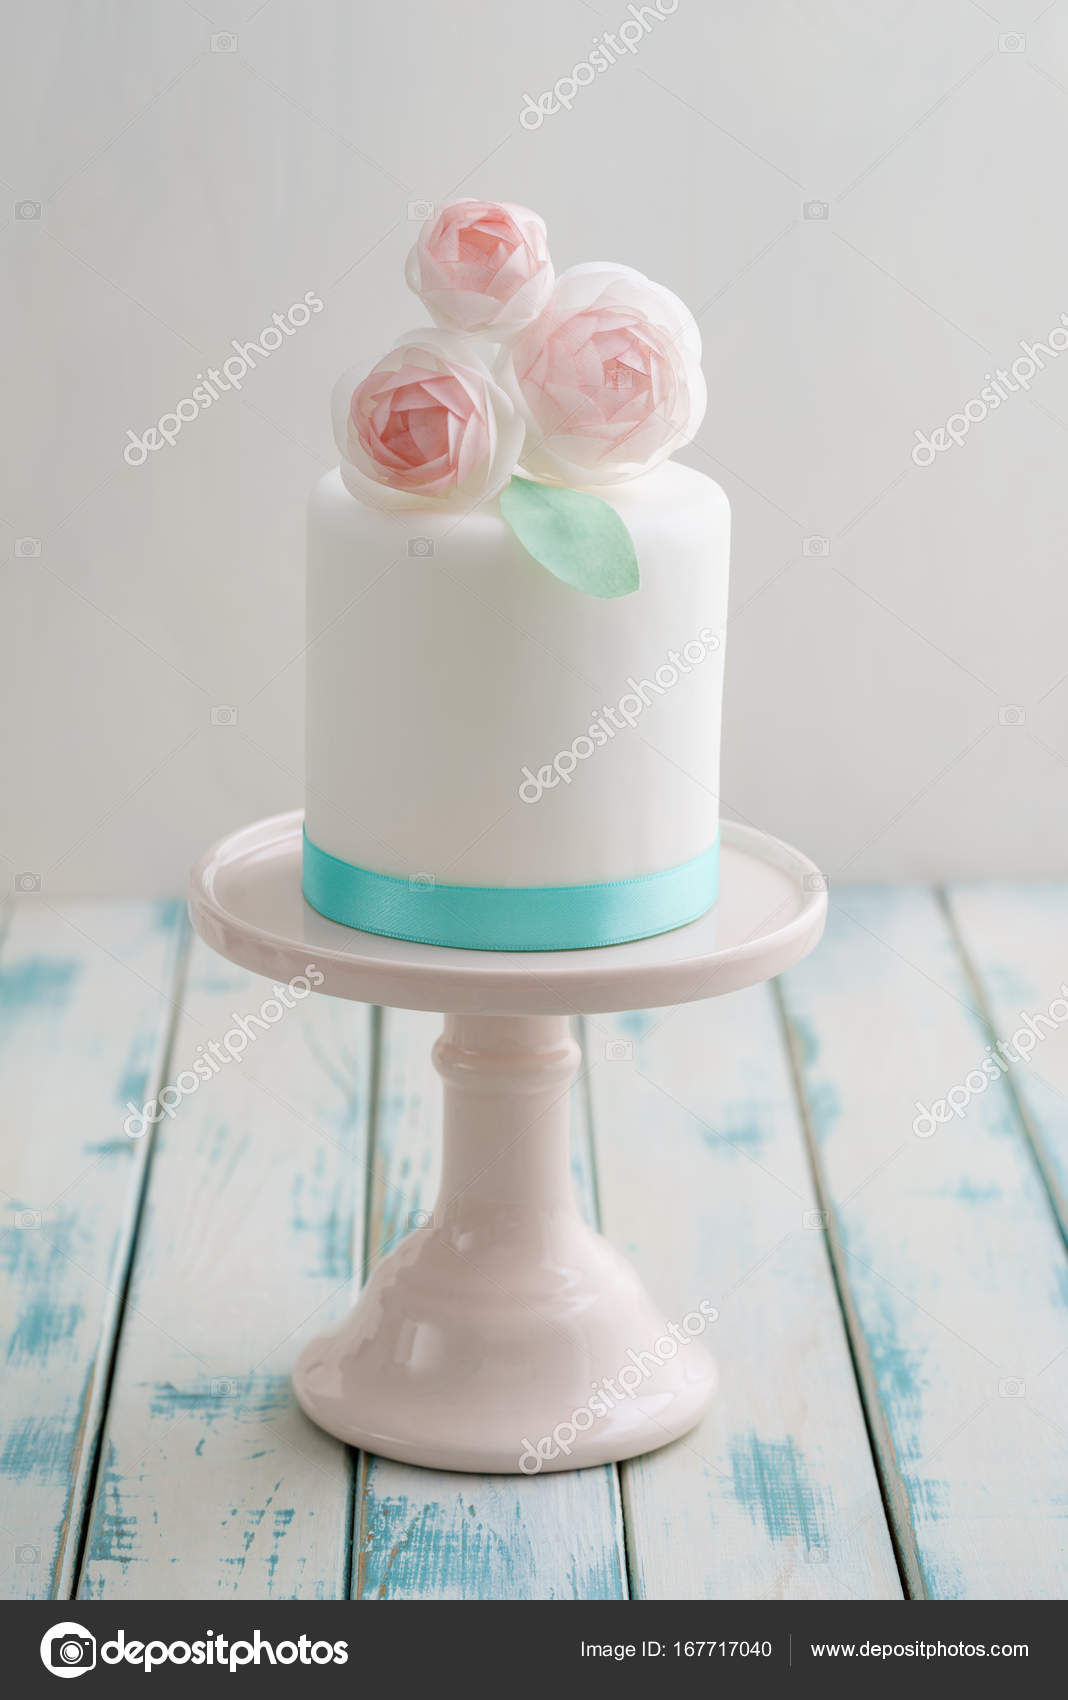 Mini Wedding Cake With Flowers Stock Photo Ecoelfen 167717040